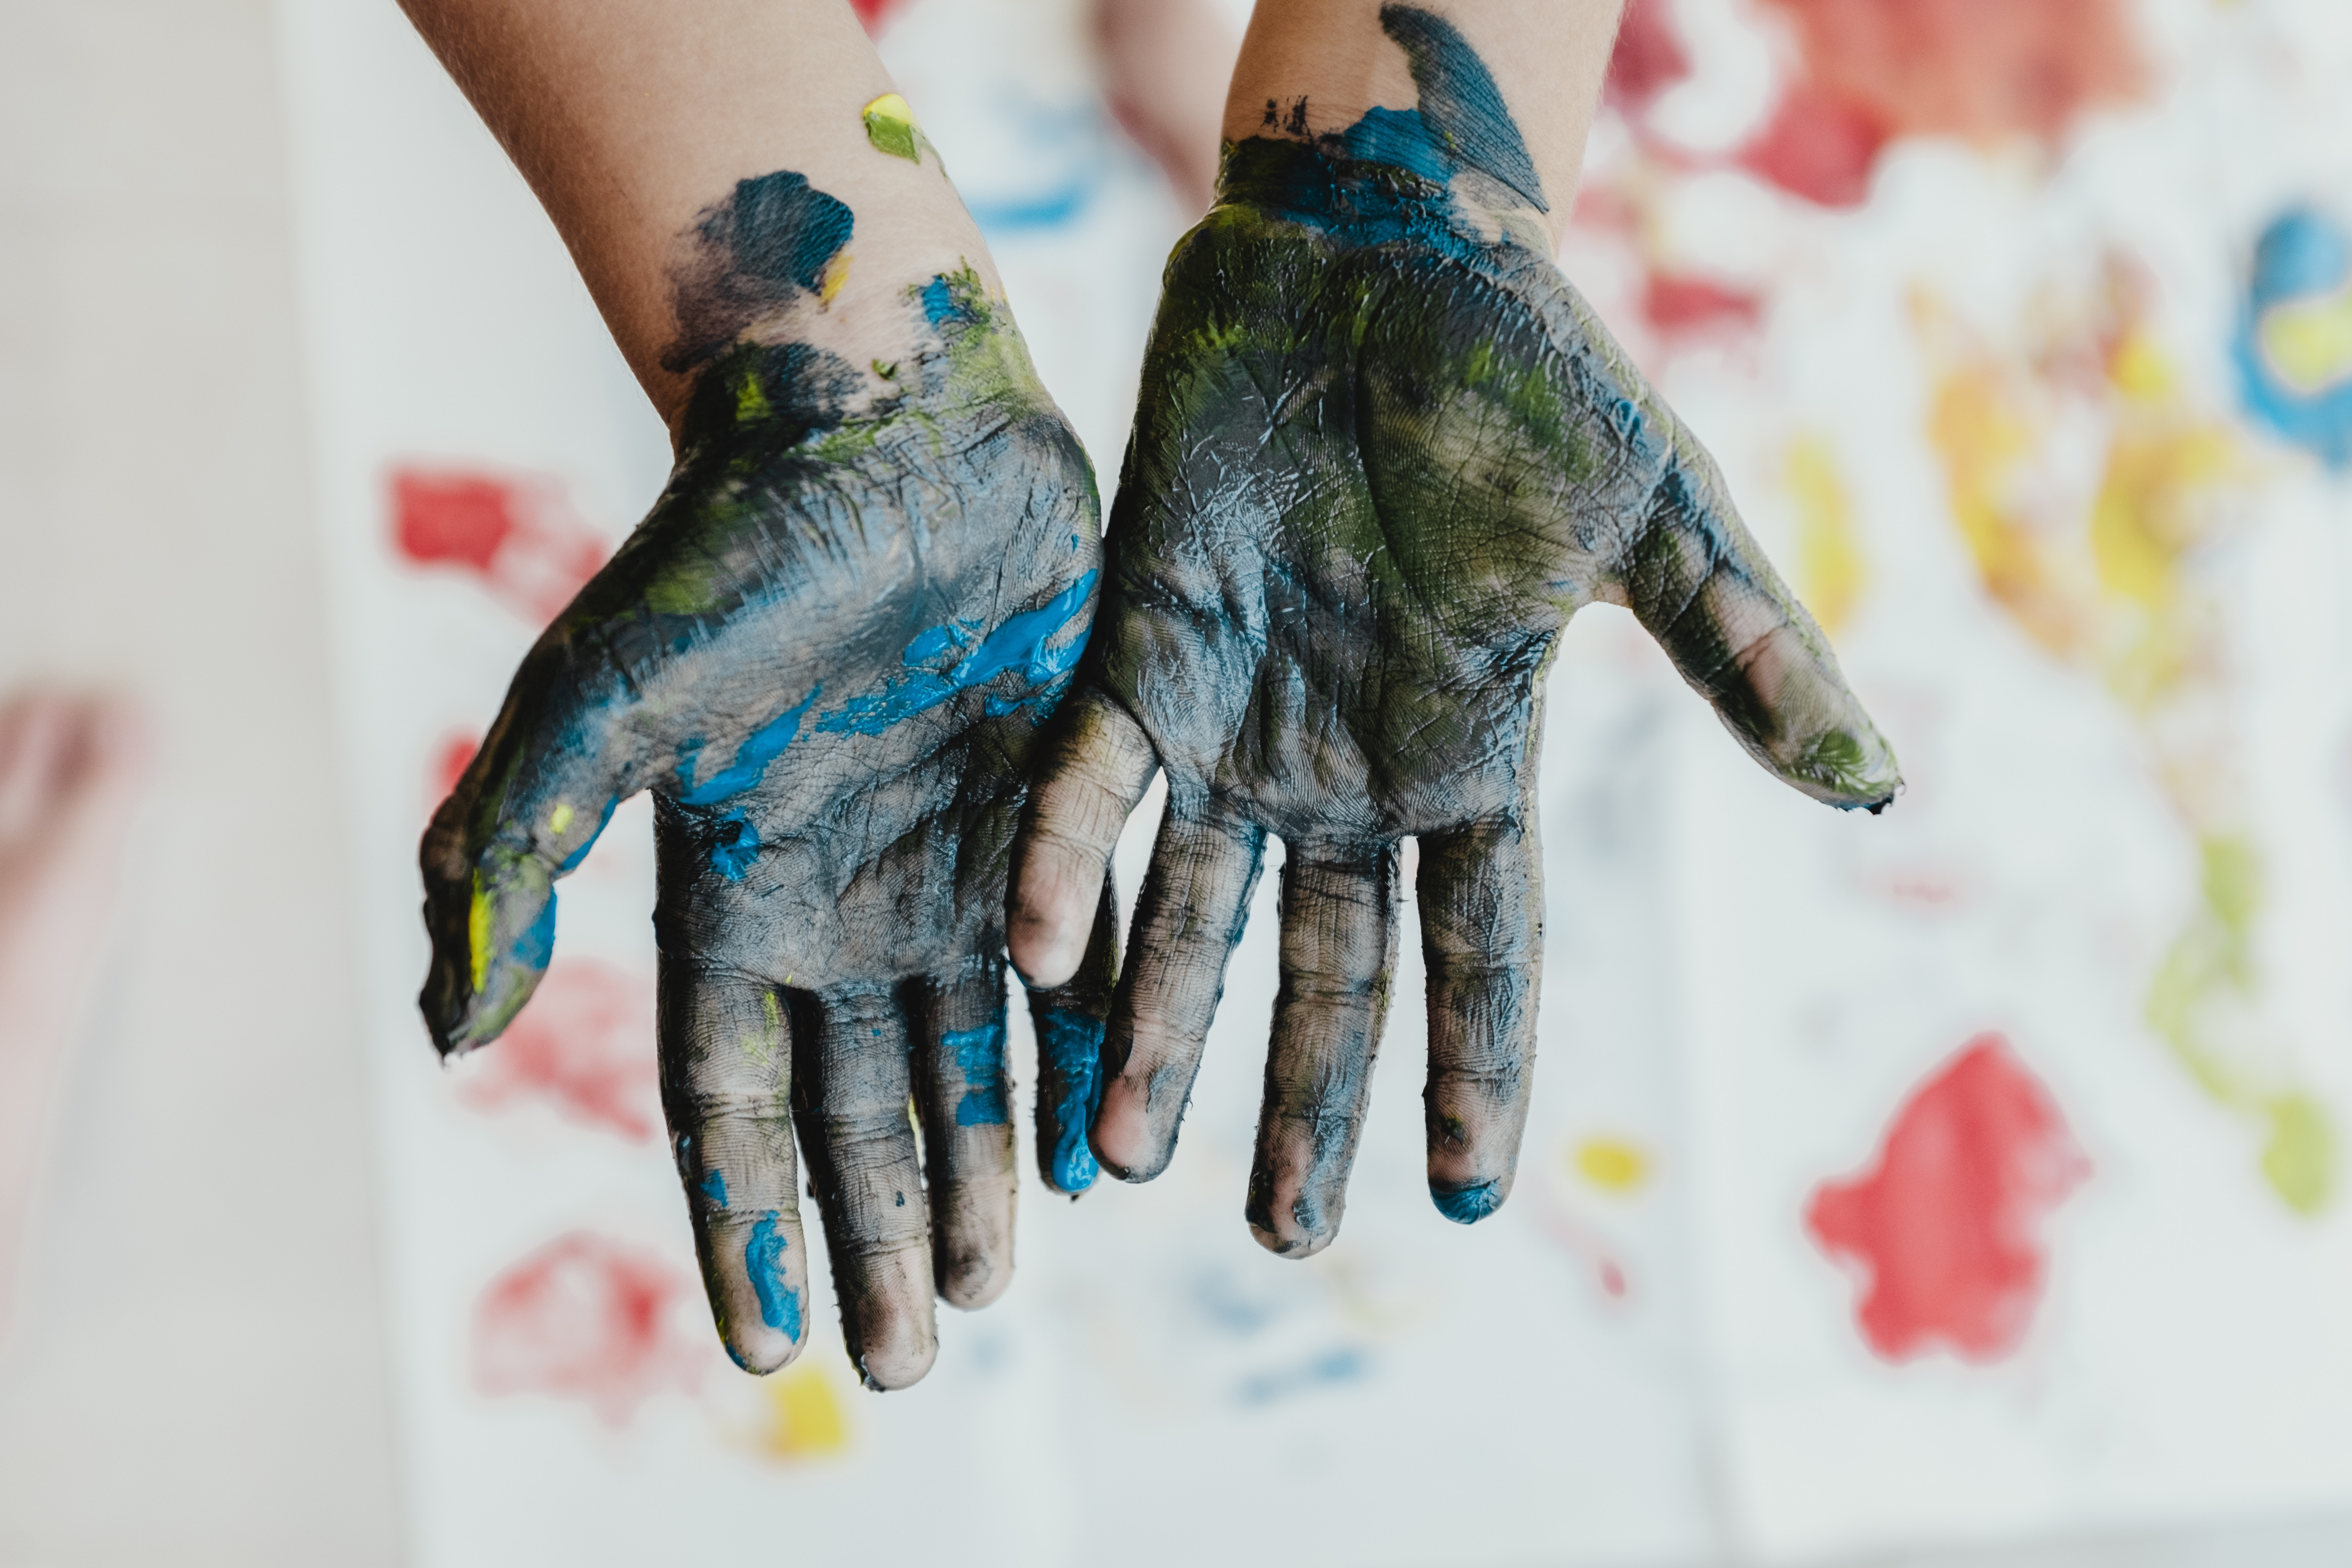 A Study on Creativity and Children